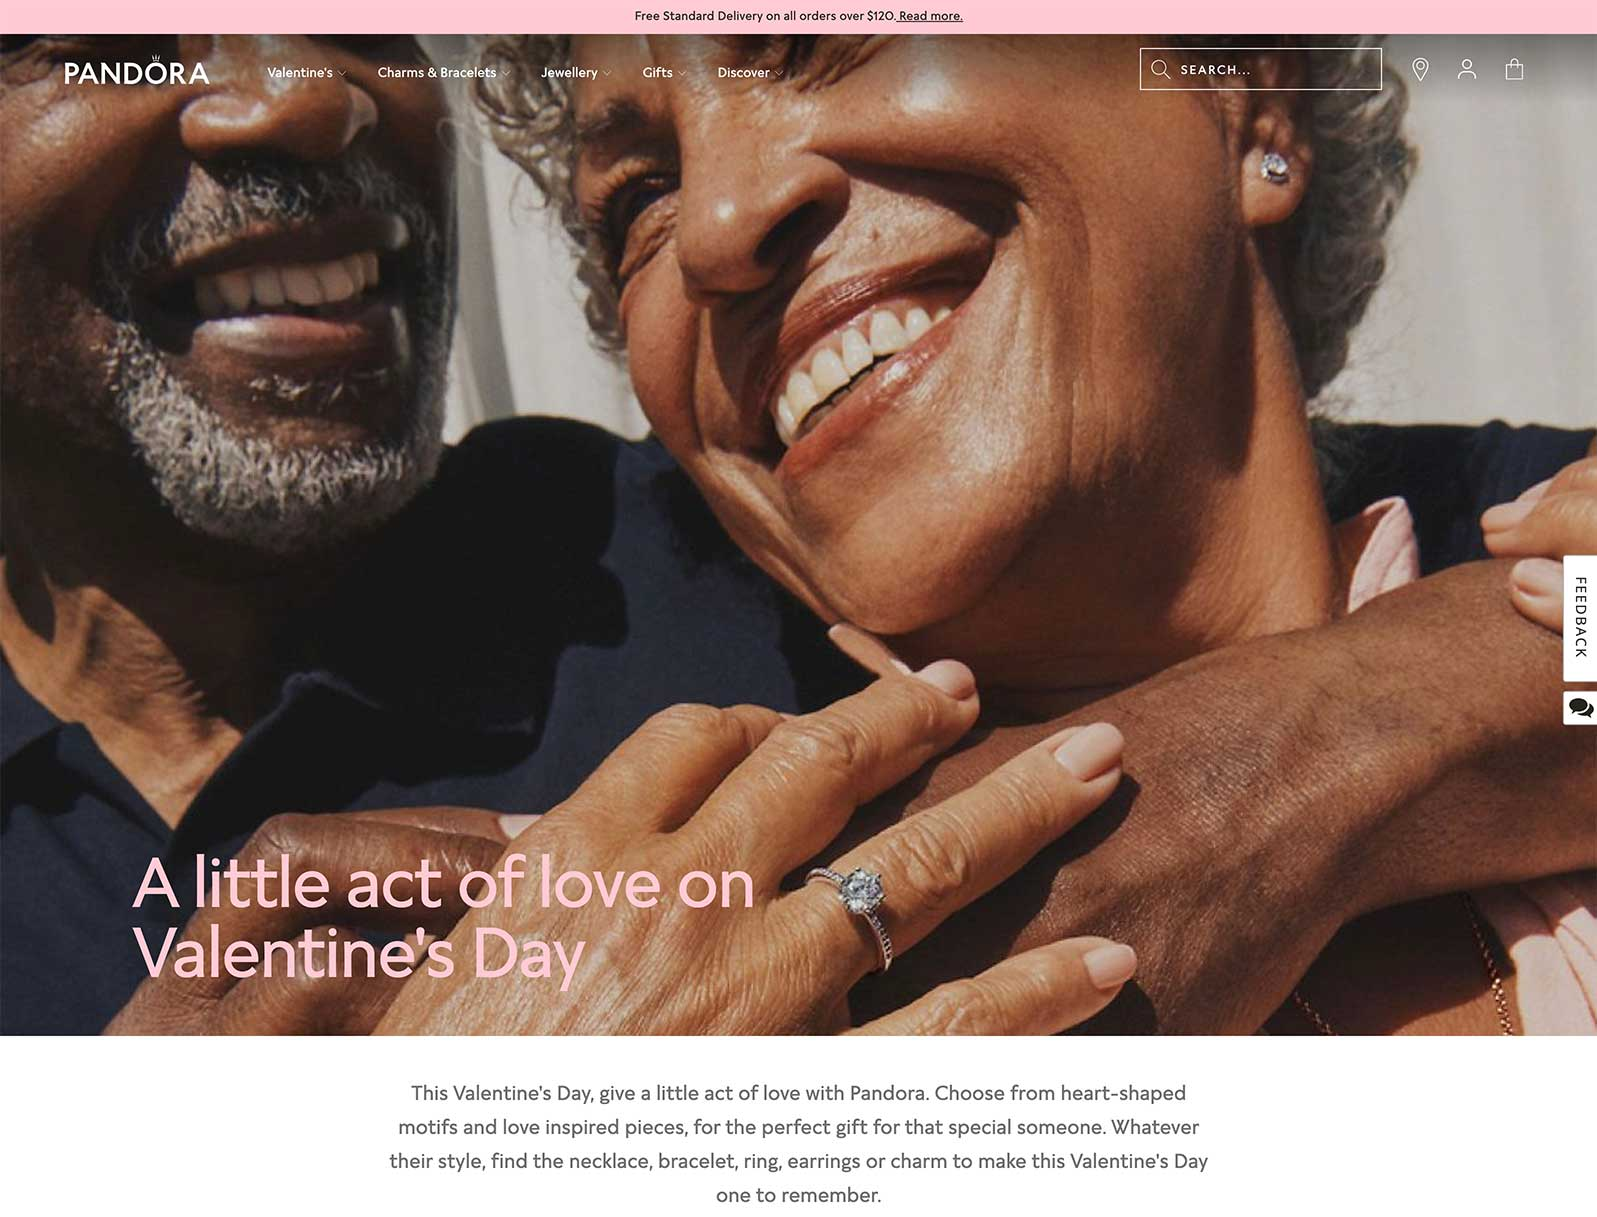 Love is in the air at Pandora with their Valentines Day landing page